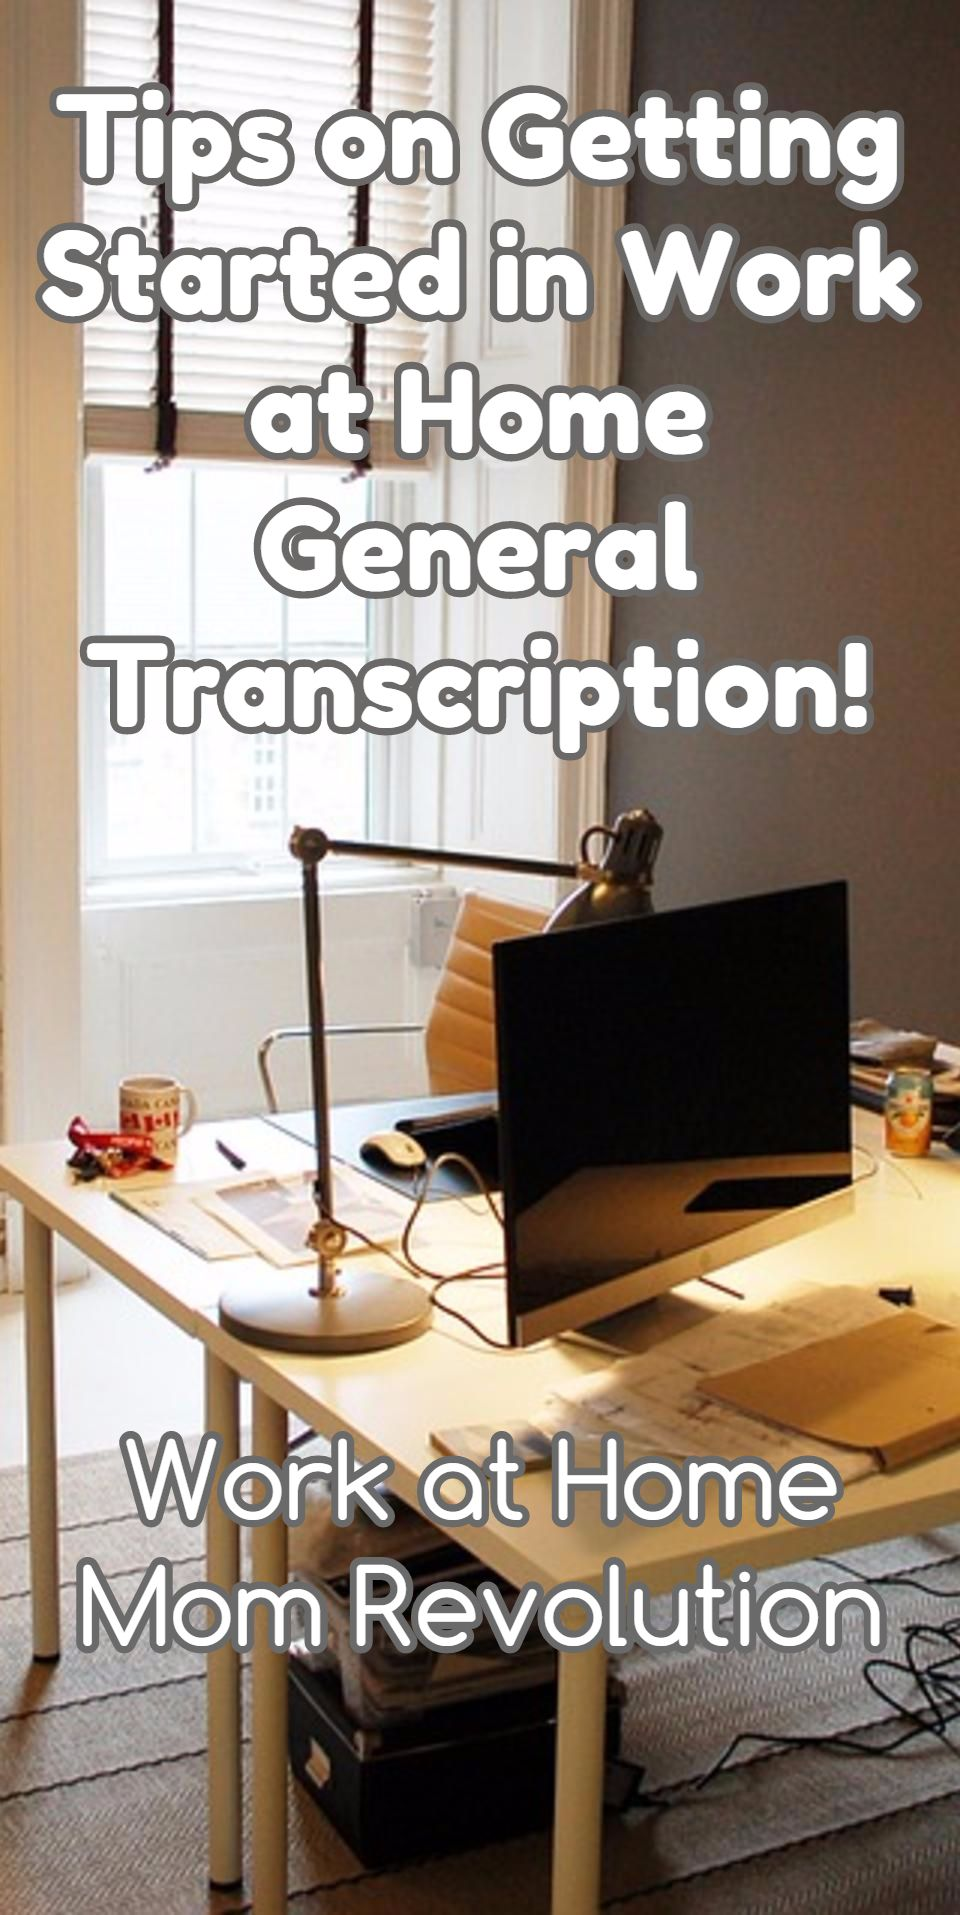 work at home transcription tips on getting started work at home rh pinterest com